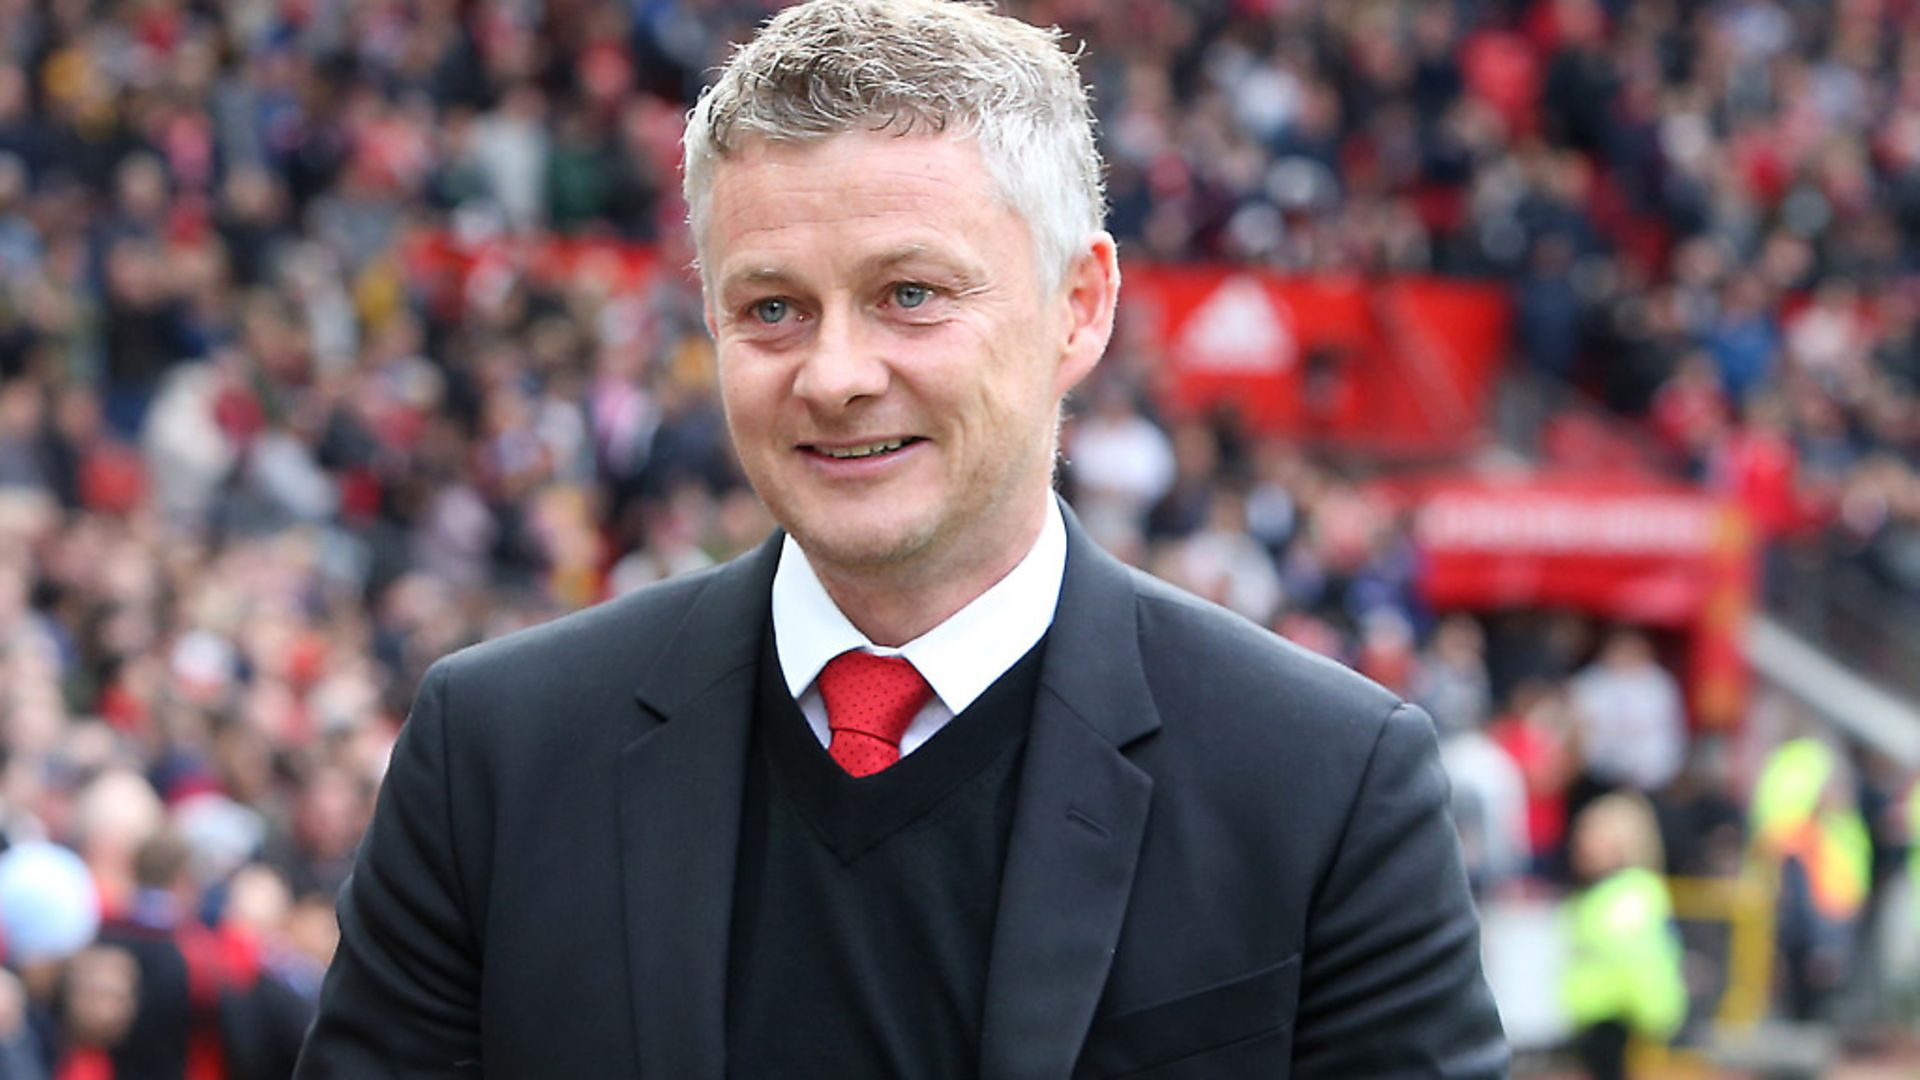 MANCHESTER, ENGLAND - APRIL 28: Manager Ole Gunnar Solskjaer of Manchester United walks out ahead of the Premier League match between Manchester United and Chelsea FC at Old Trafford on April 28, 2019 in Manchester, United Kingdom. (Photo by Matthew Peters/Man Utd via Getty Images) - Credit: Man Utd via Getty Images